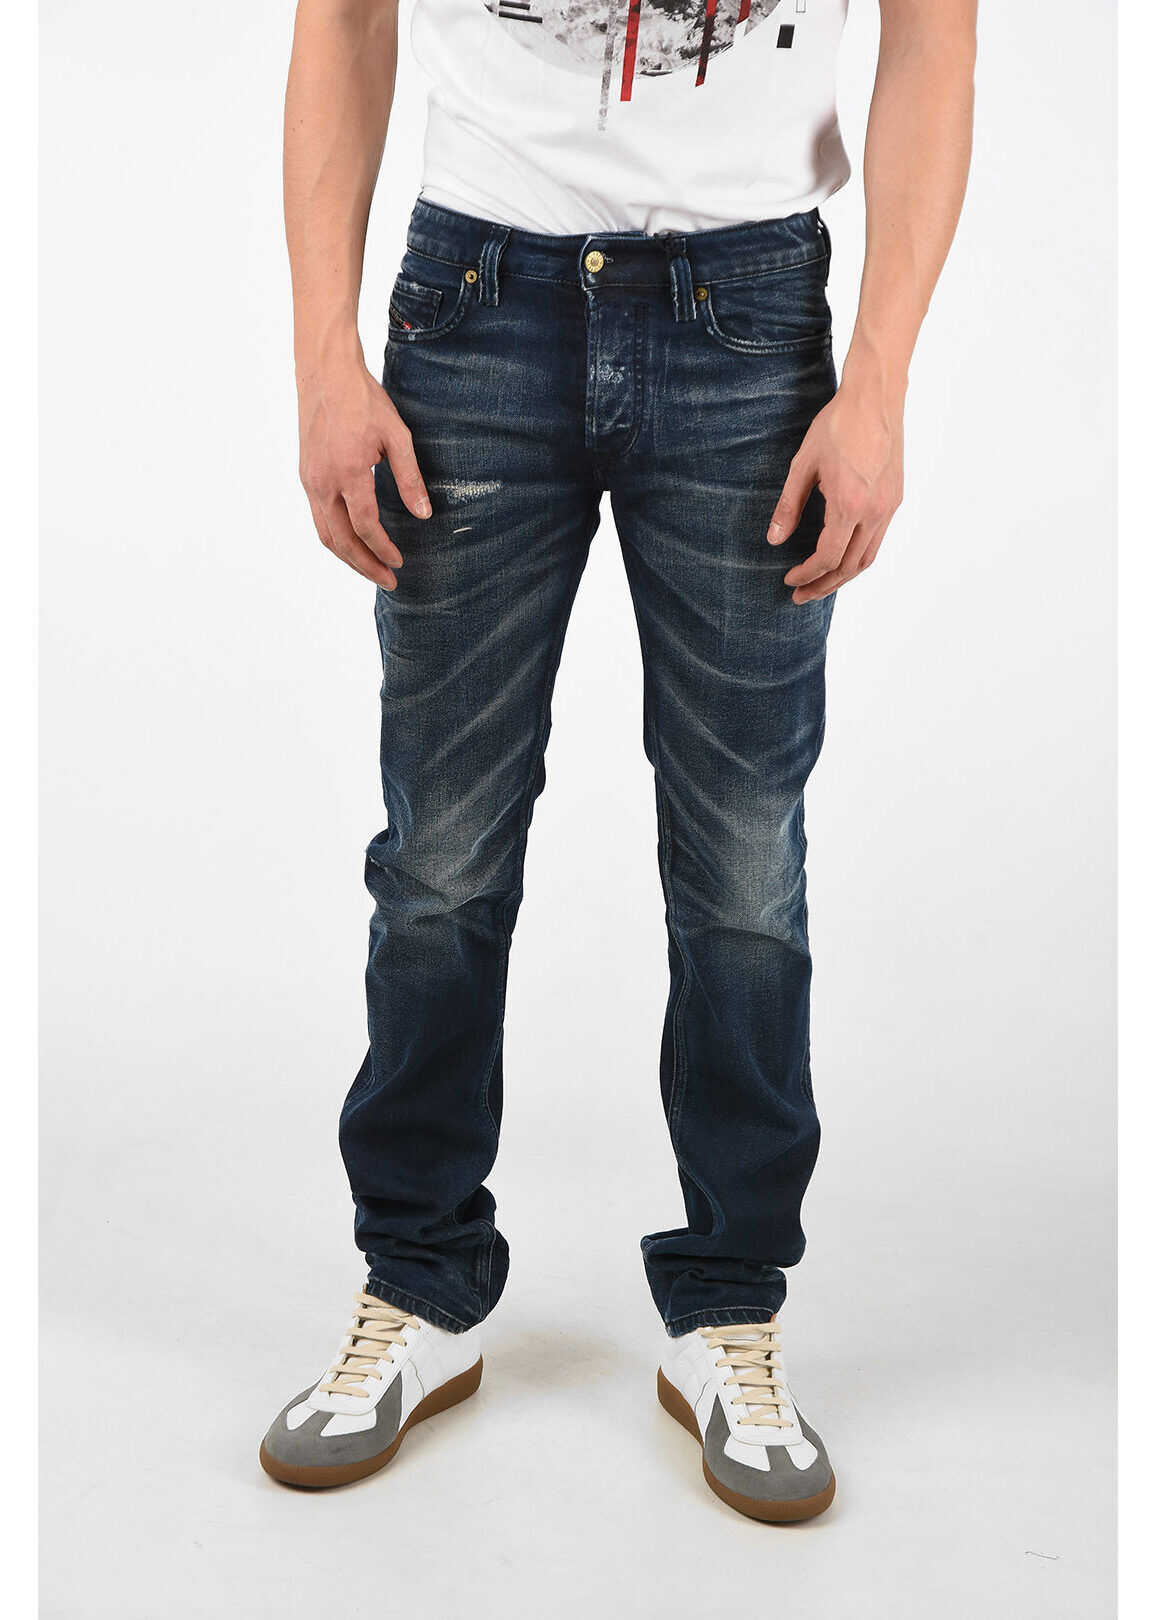 Diesel 19cm Stonewashed SAFADO-X Straight Fit Jeans L32 BLUE imagine